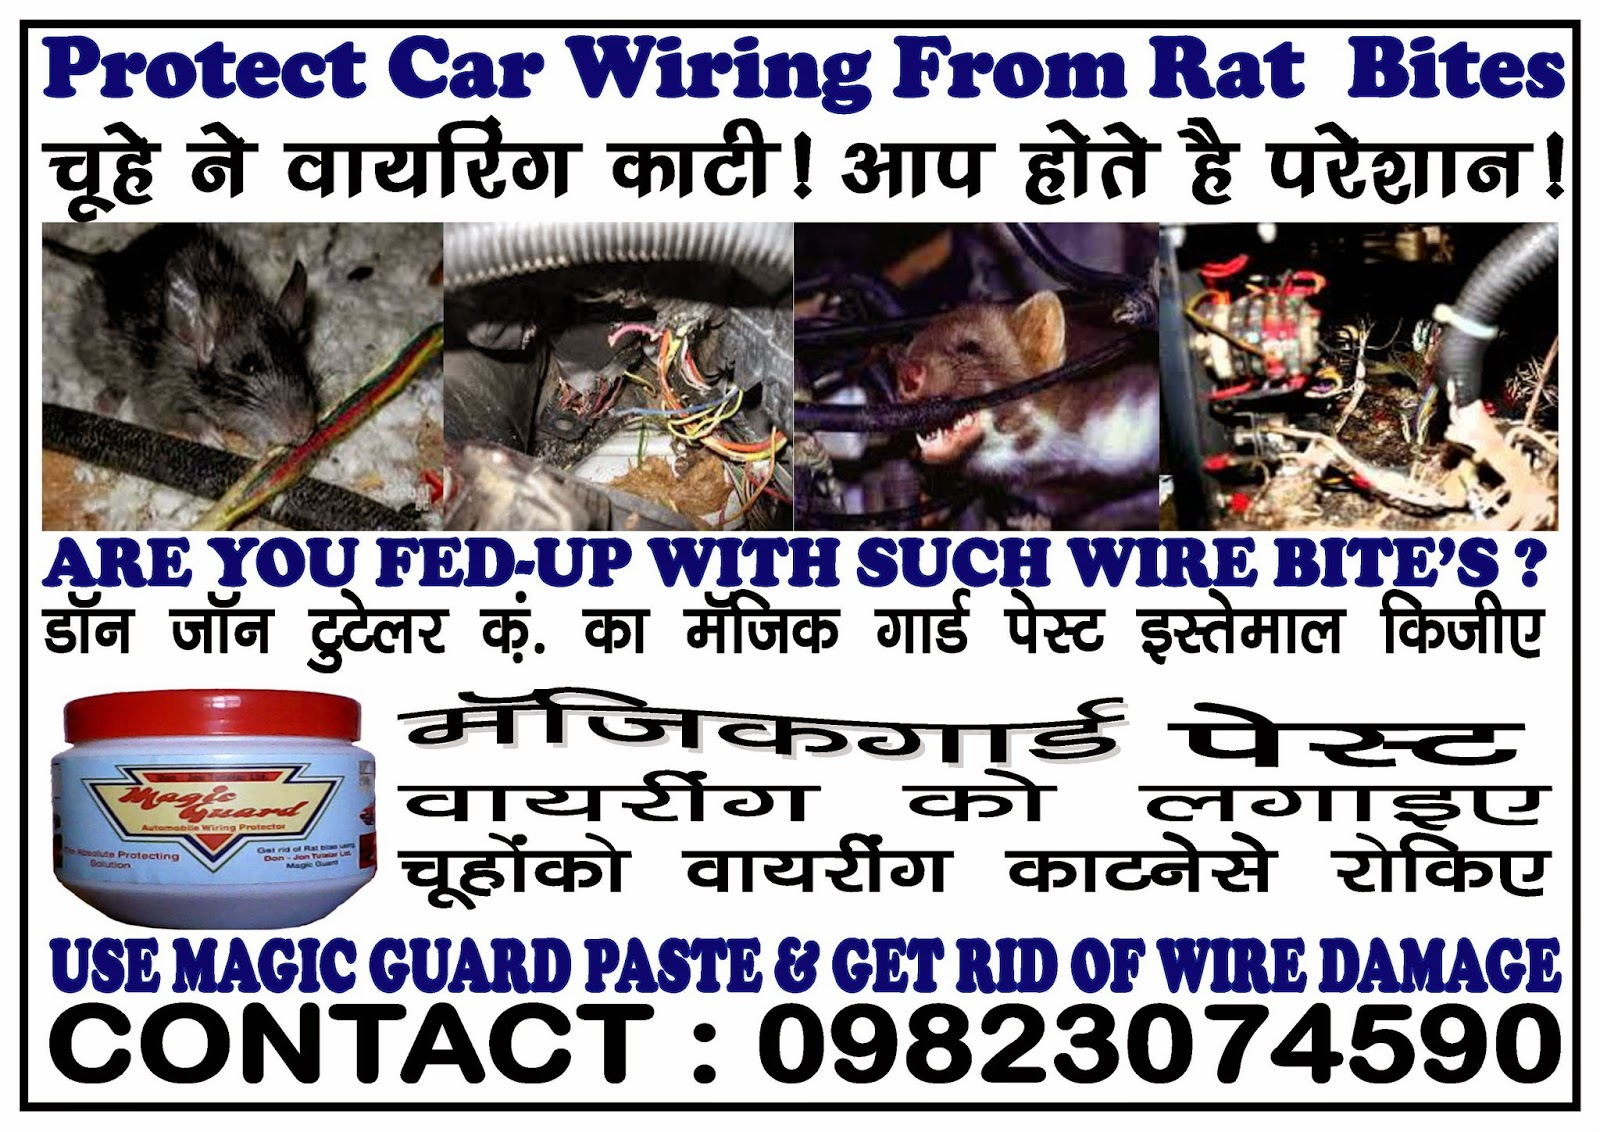 solution to prevent car wiring from rat rh wiringprotectorfromrat blogspot com